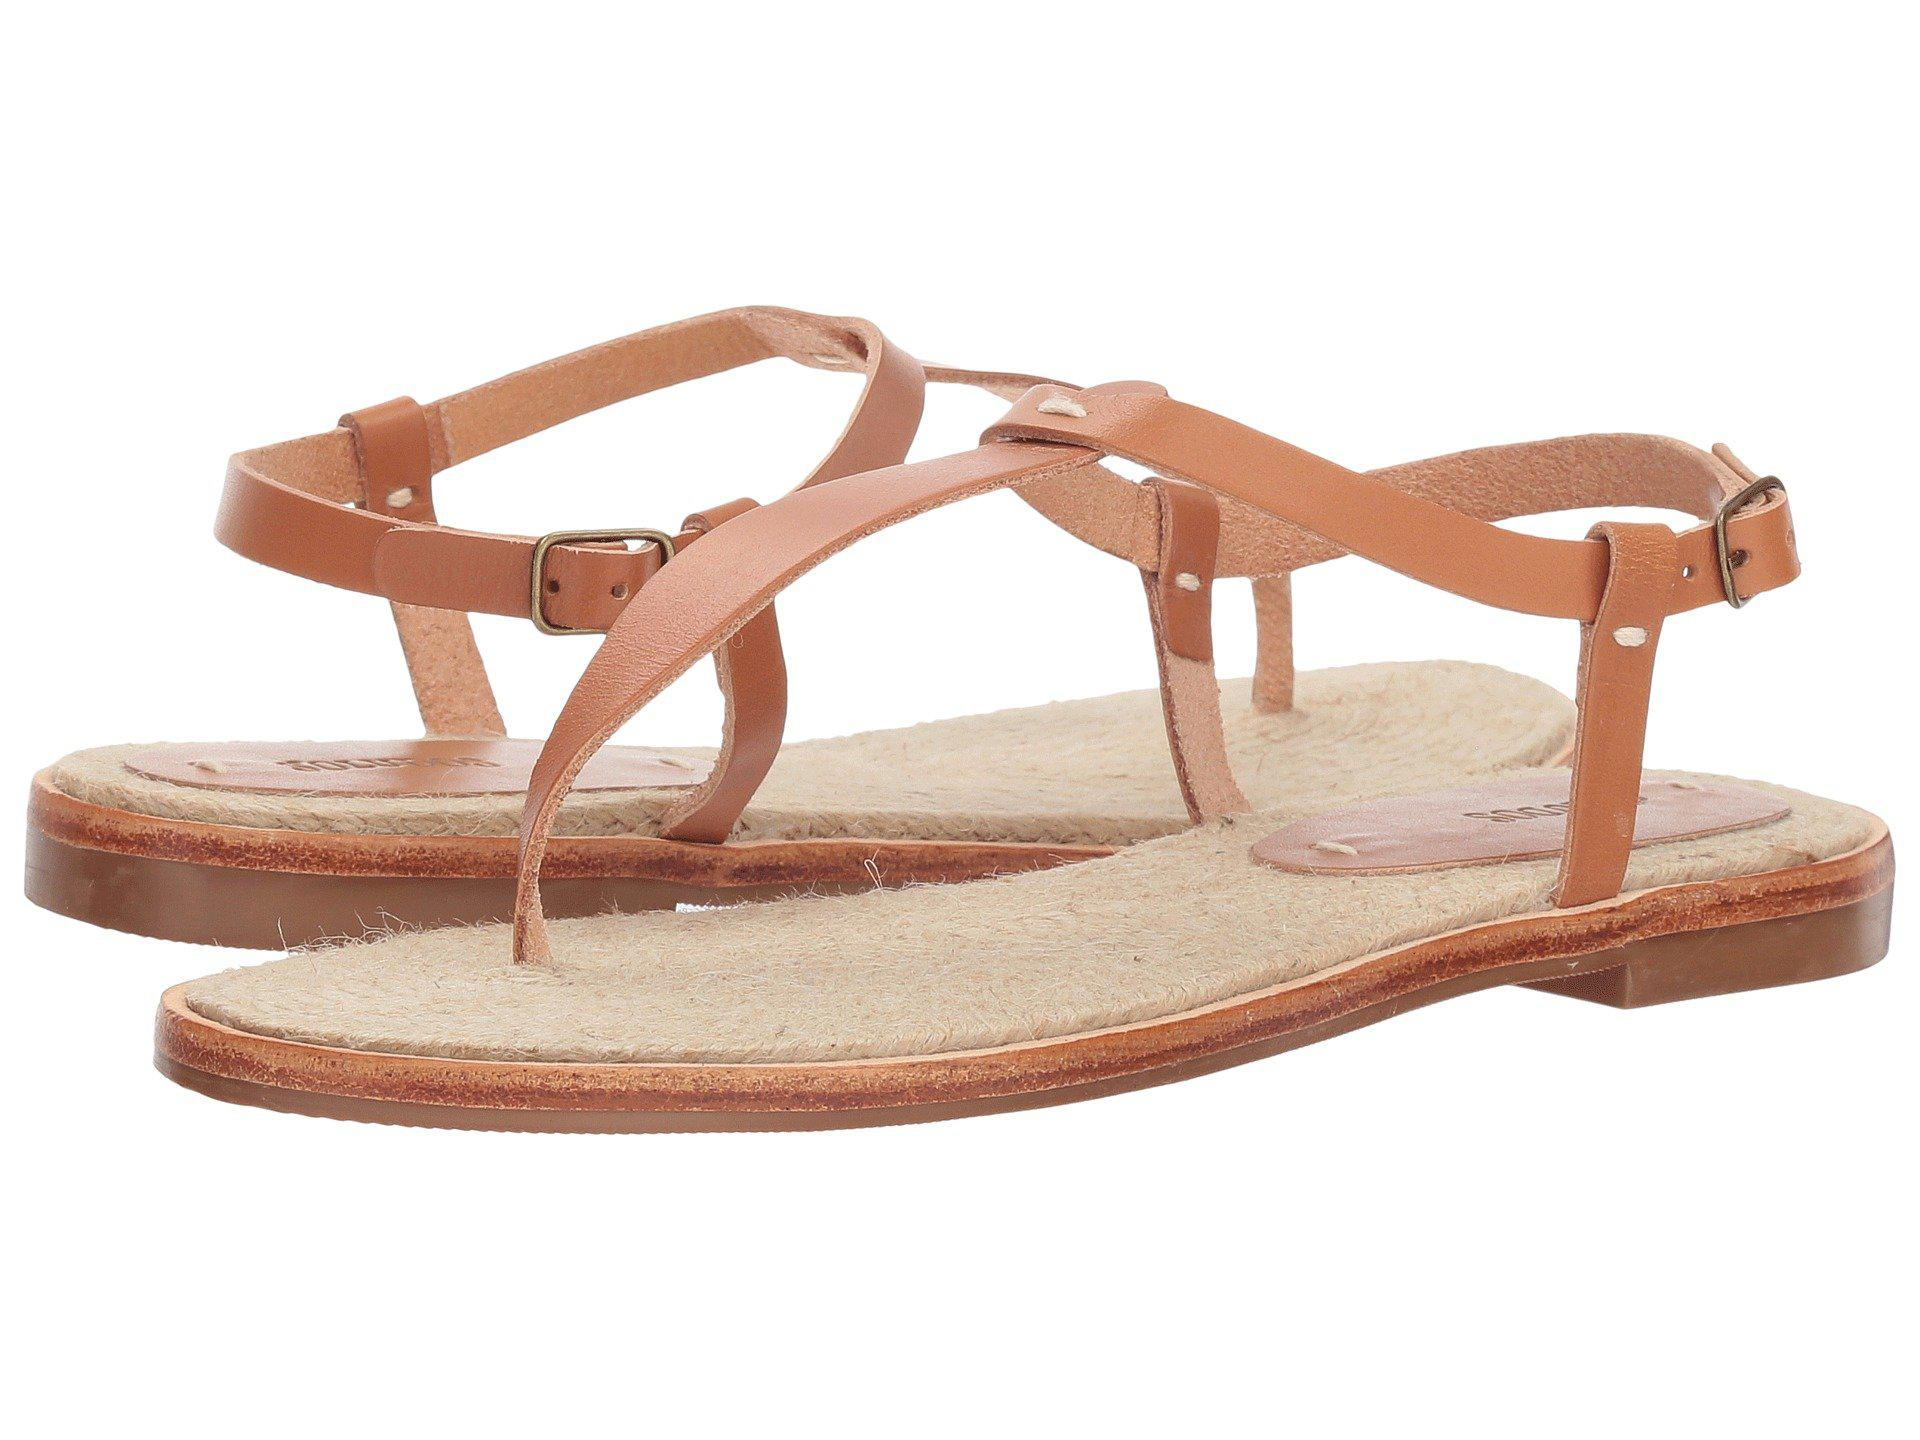 5eb37c15c4e Lyst - Soludos Classic Leather Thong Sandal - Save 36%